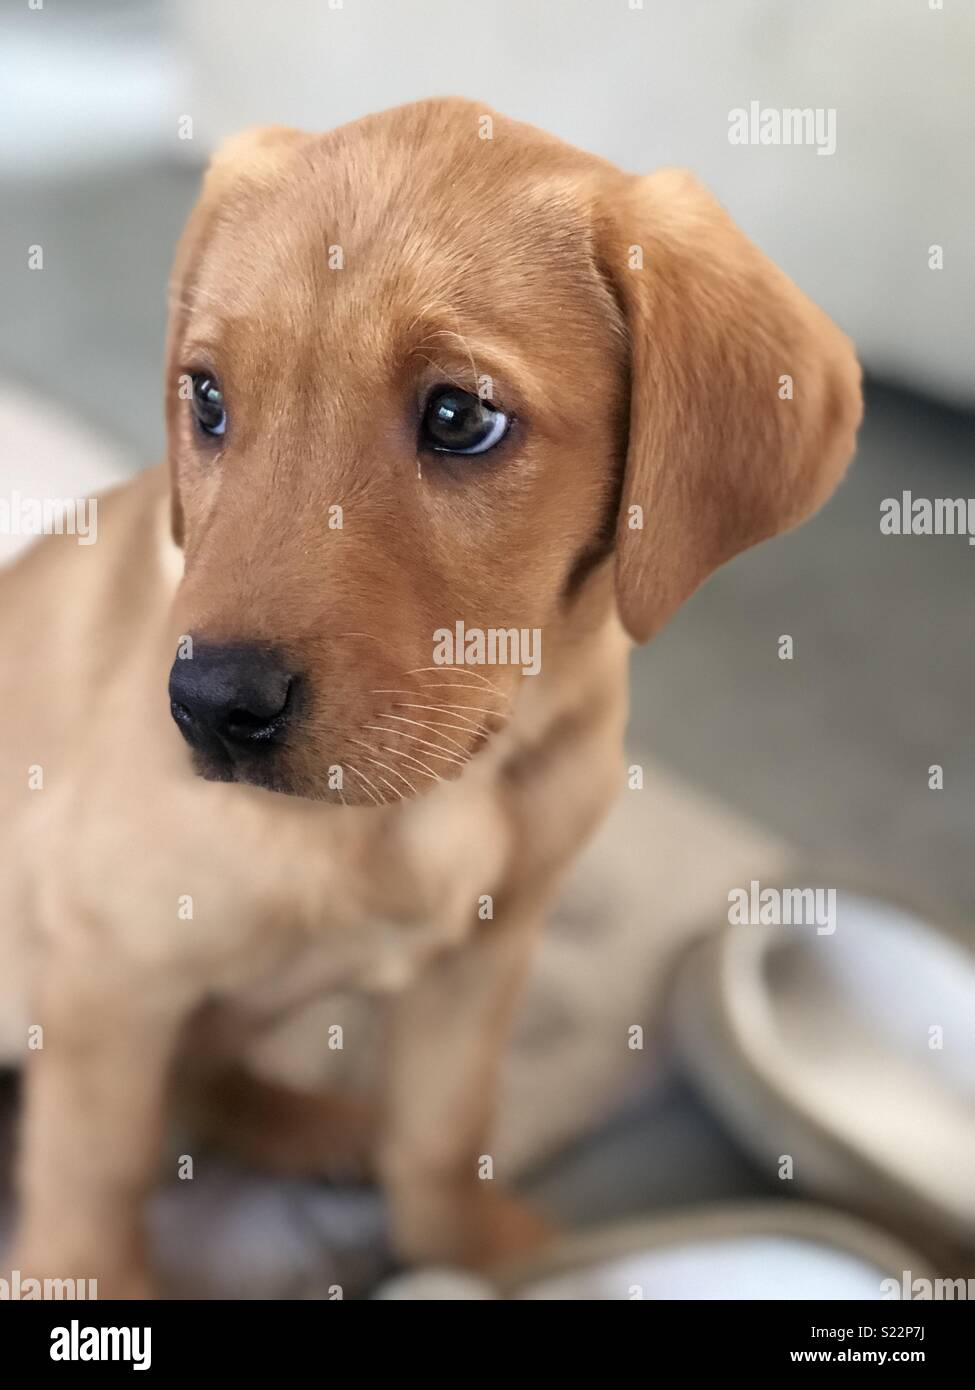 Fox Red Labrador Puppy Stock Photo Alamy